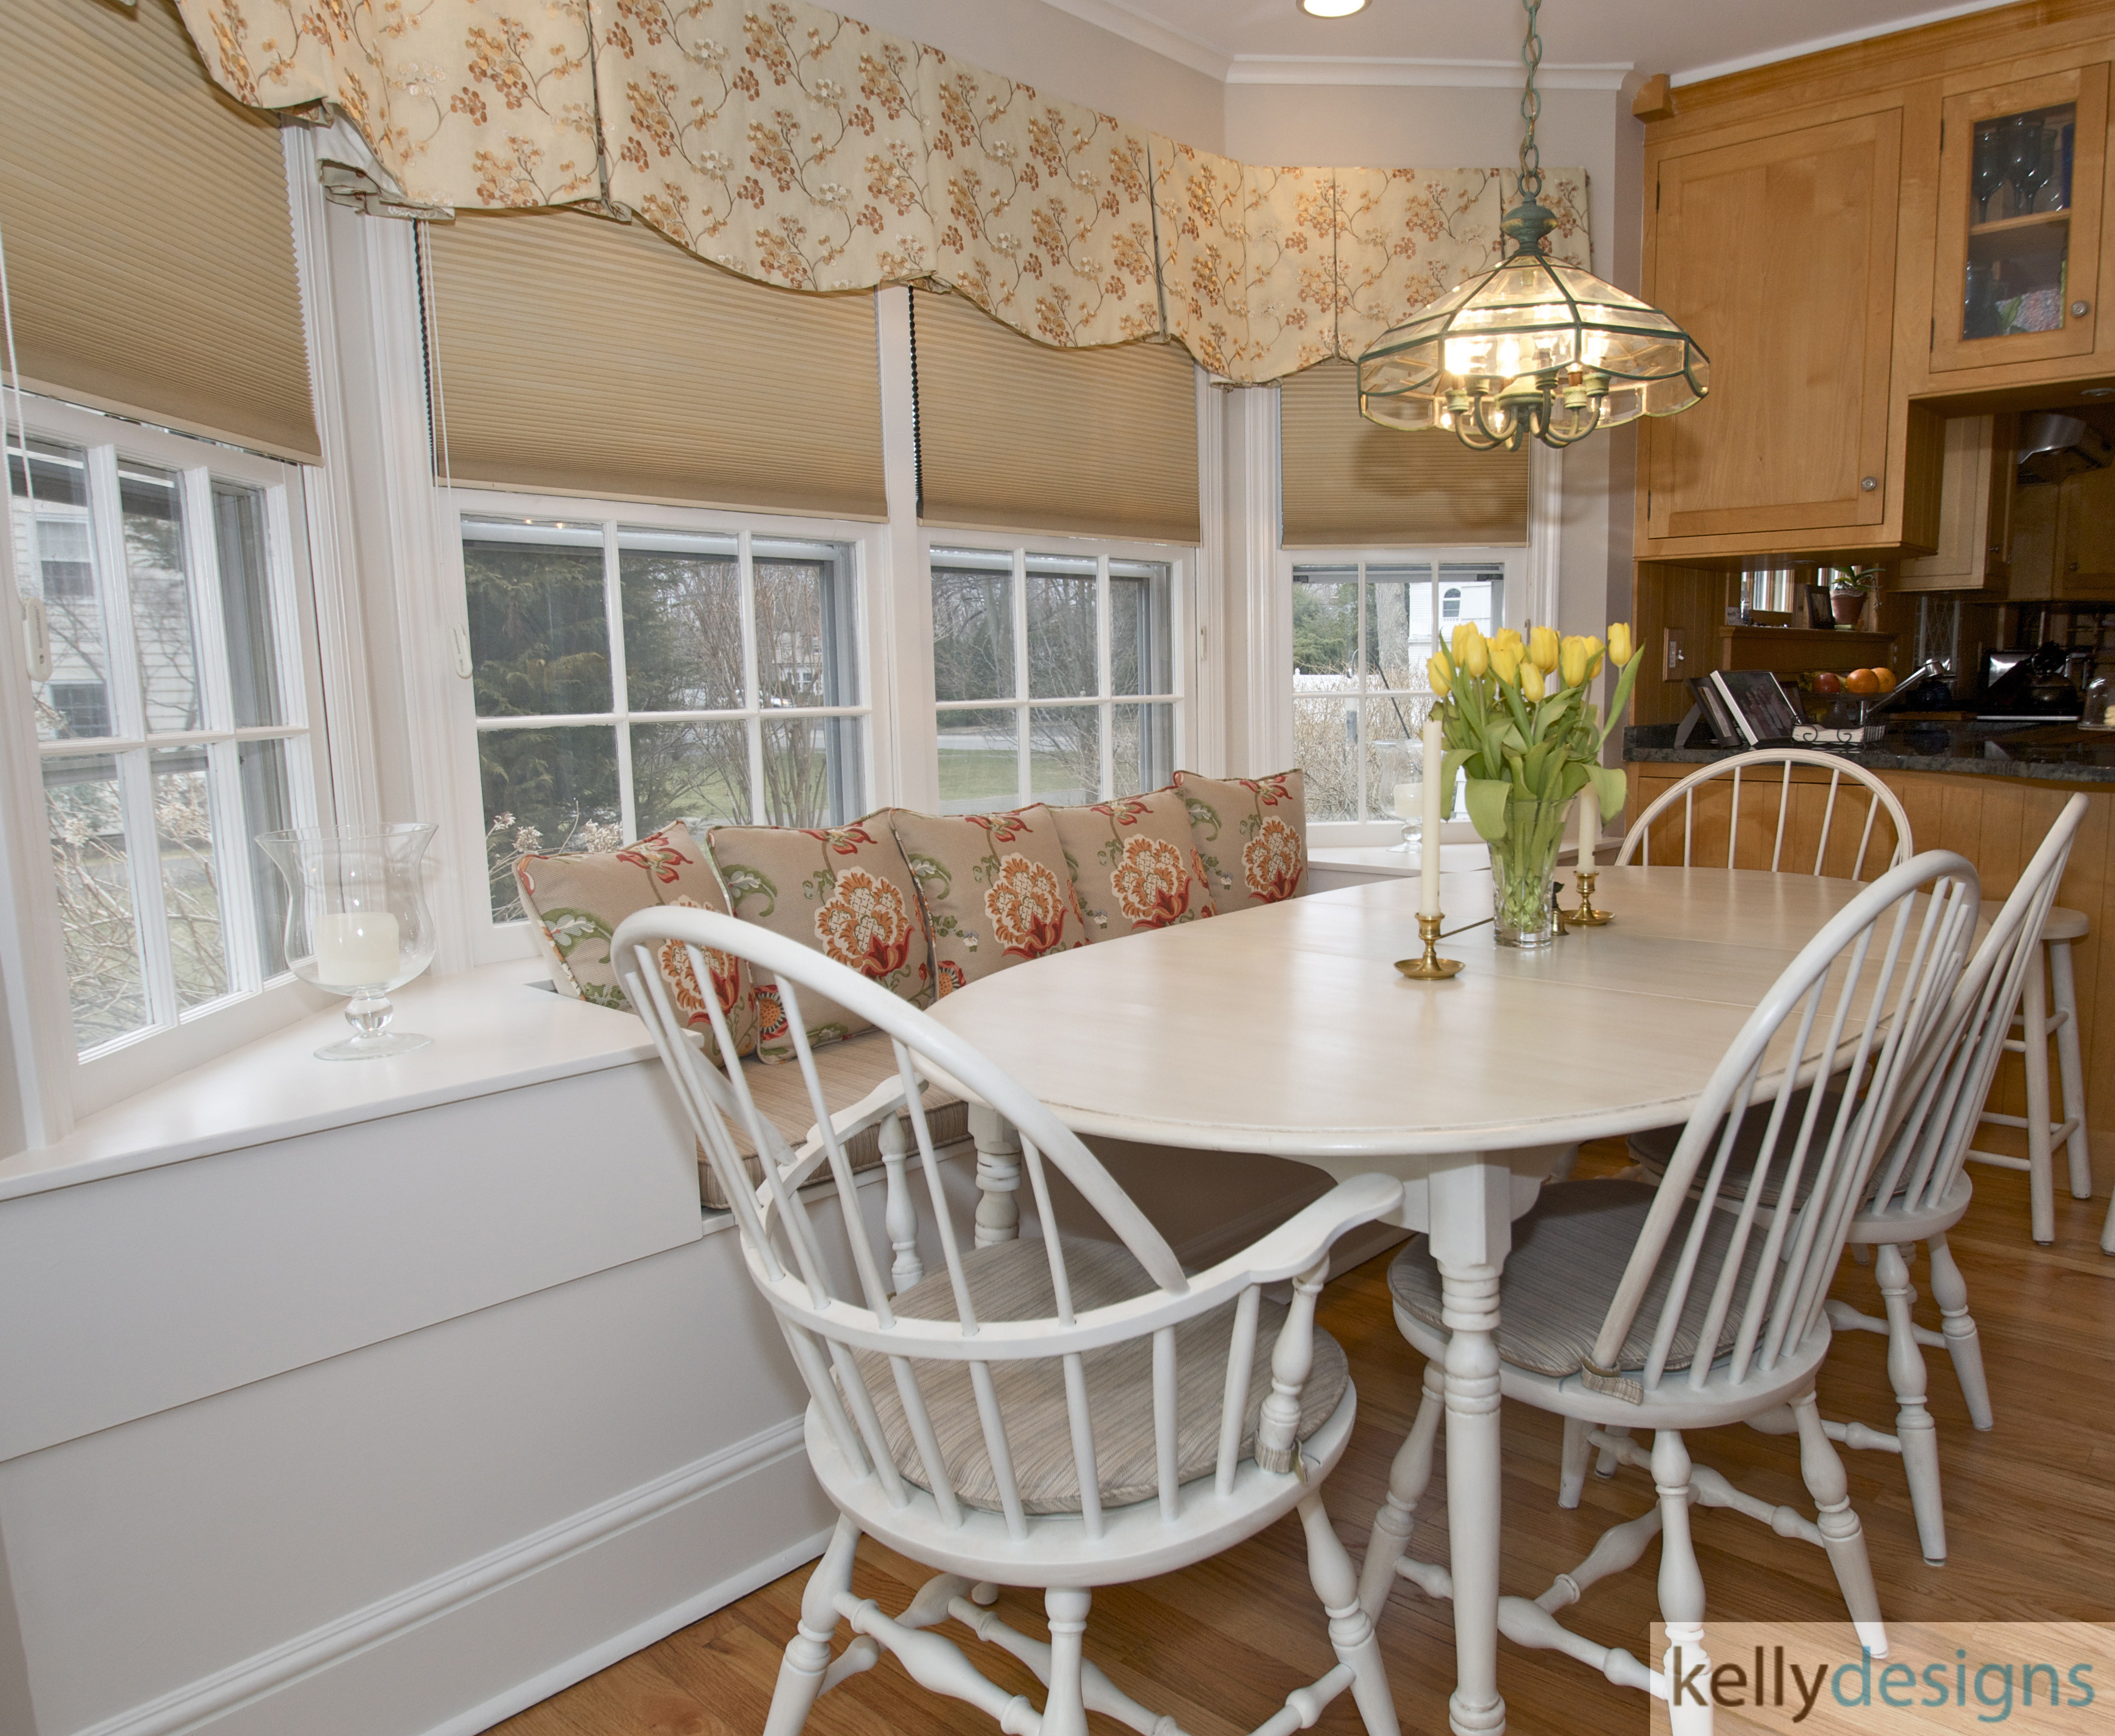 Stunning On Sturges   Eat In Kitchen    Interior Design By Kellydesigns